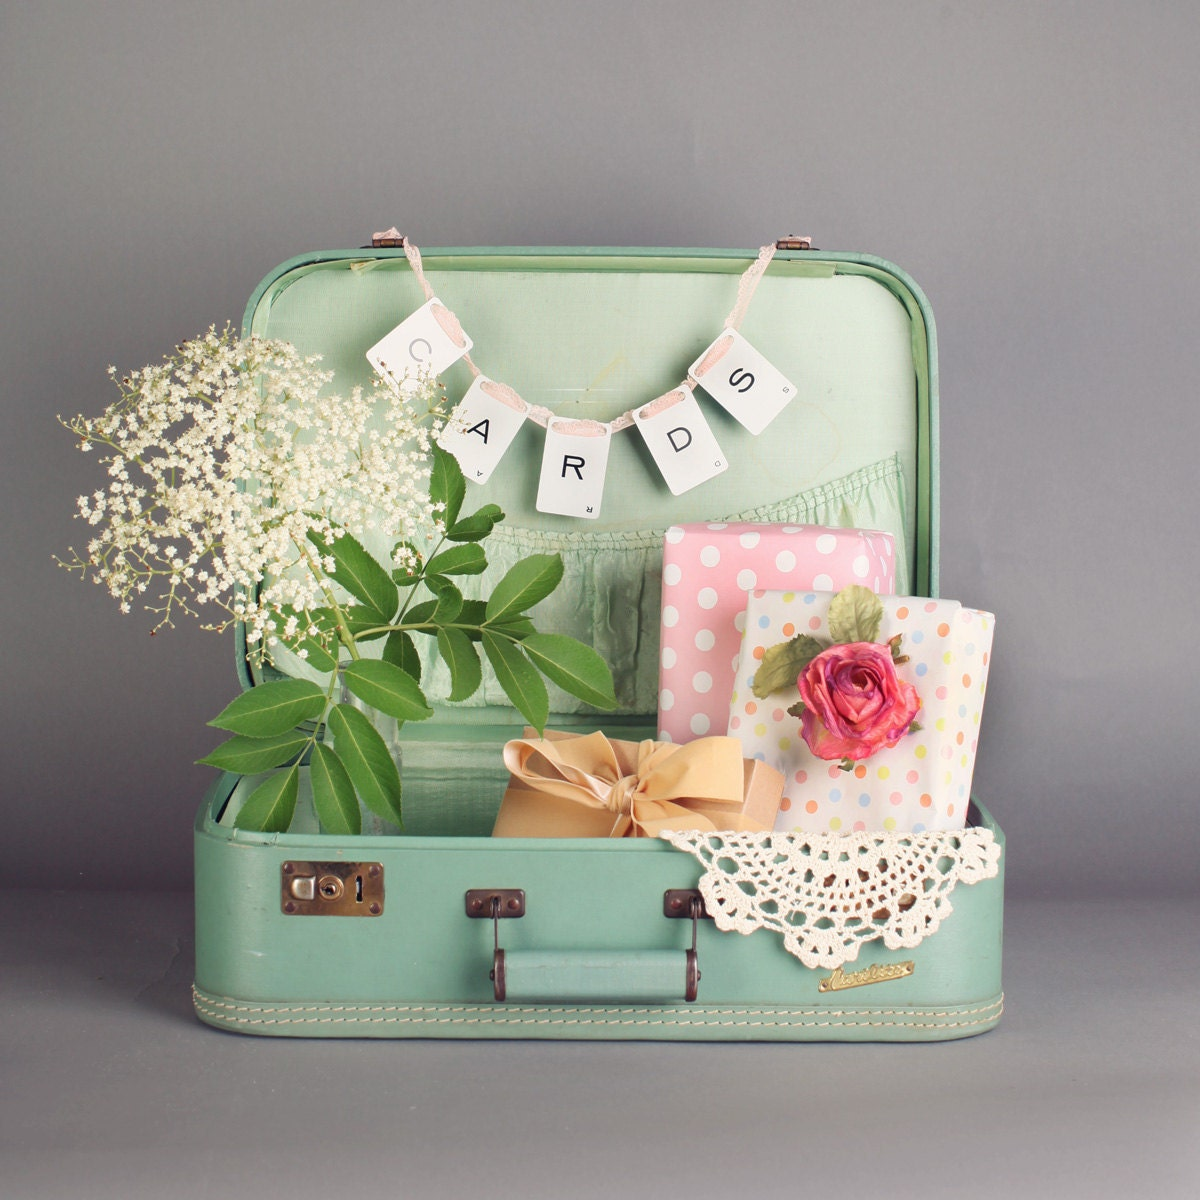 sage green suitcase wedding card box photography prop. Black Bedroom Furniture Sets. Home Design Ideas